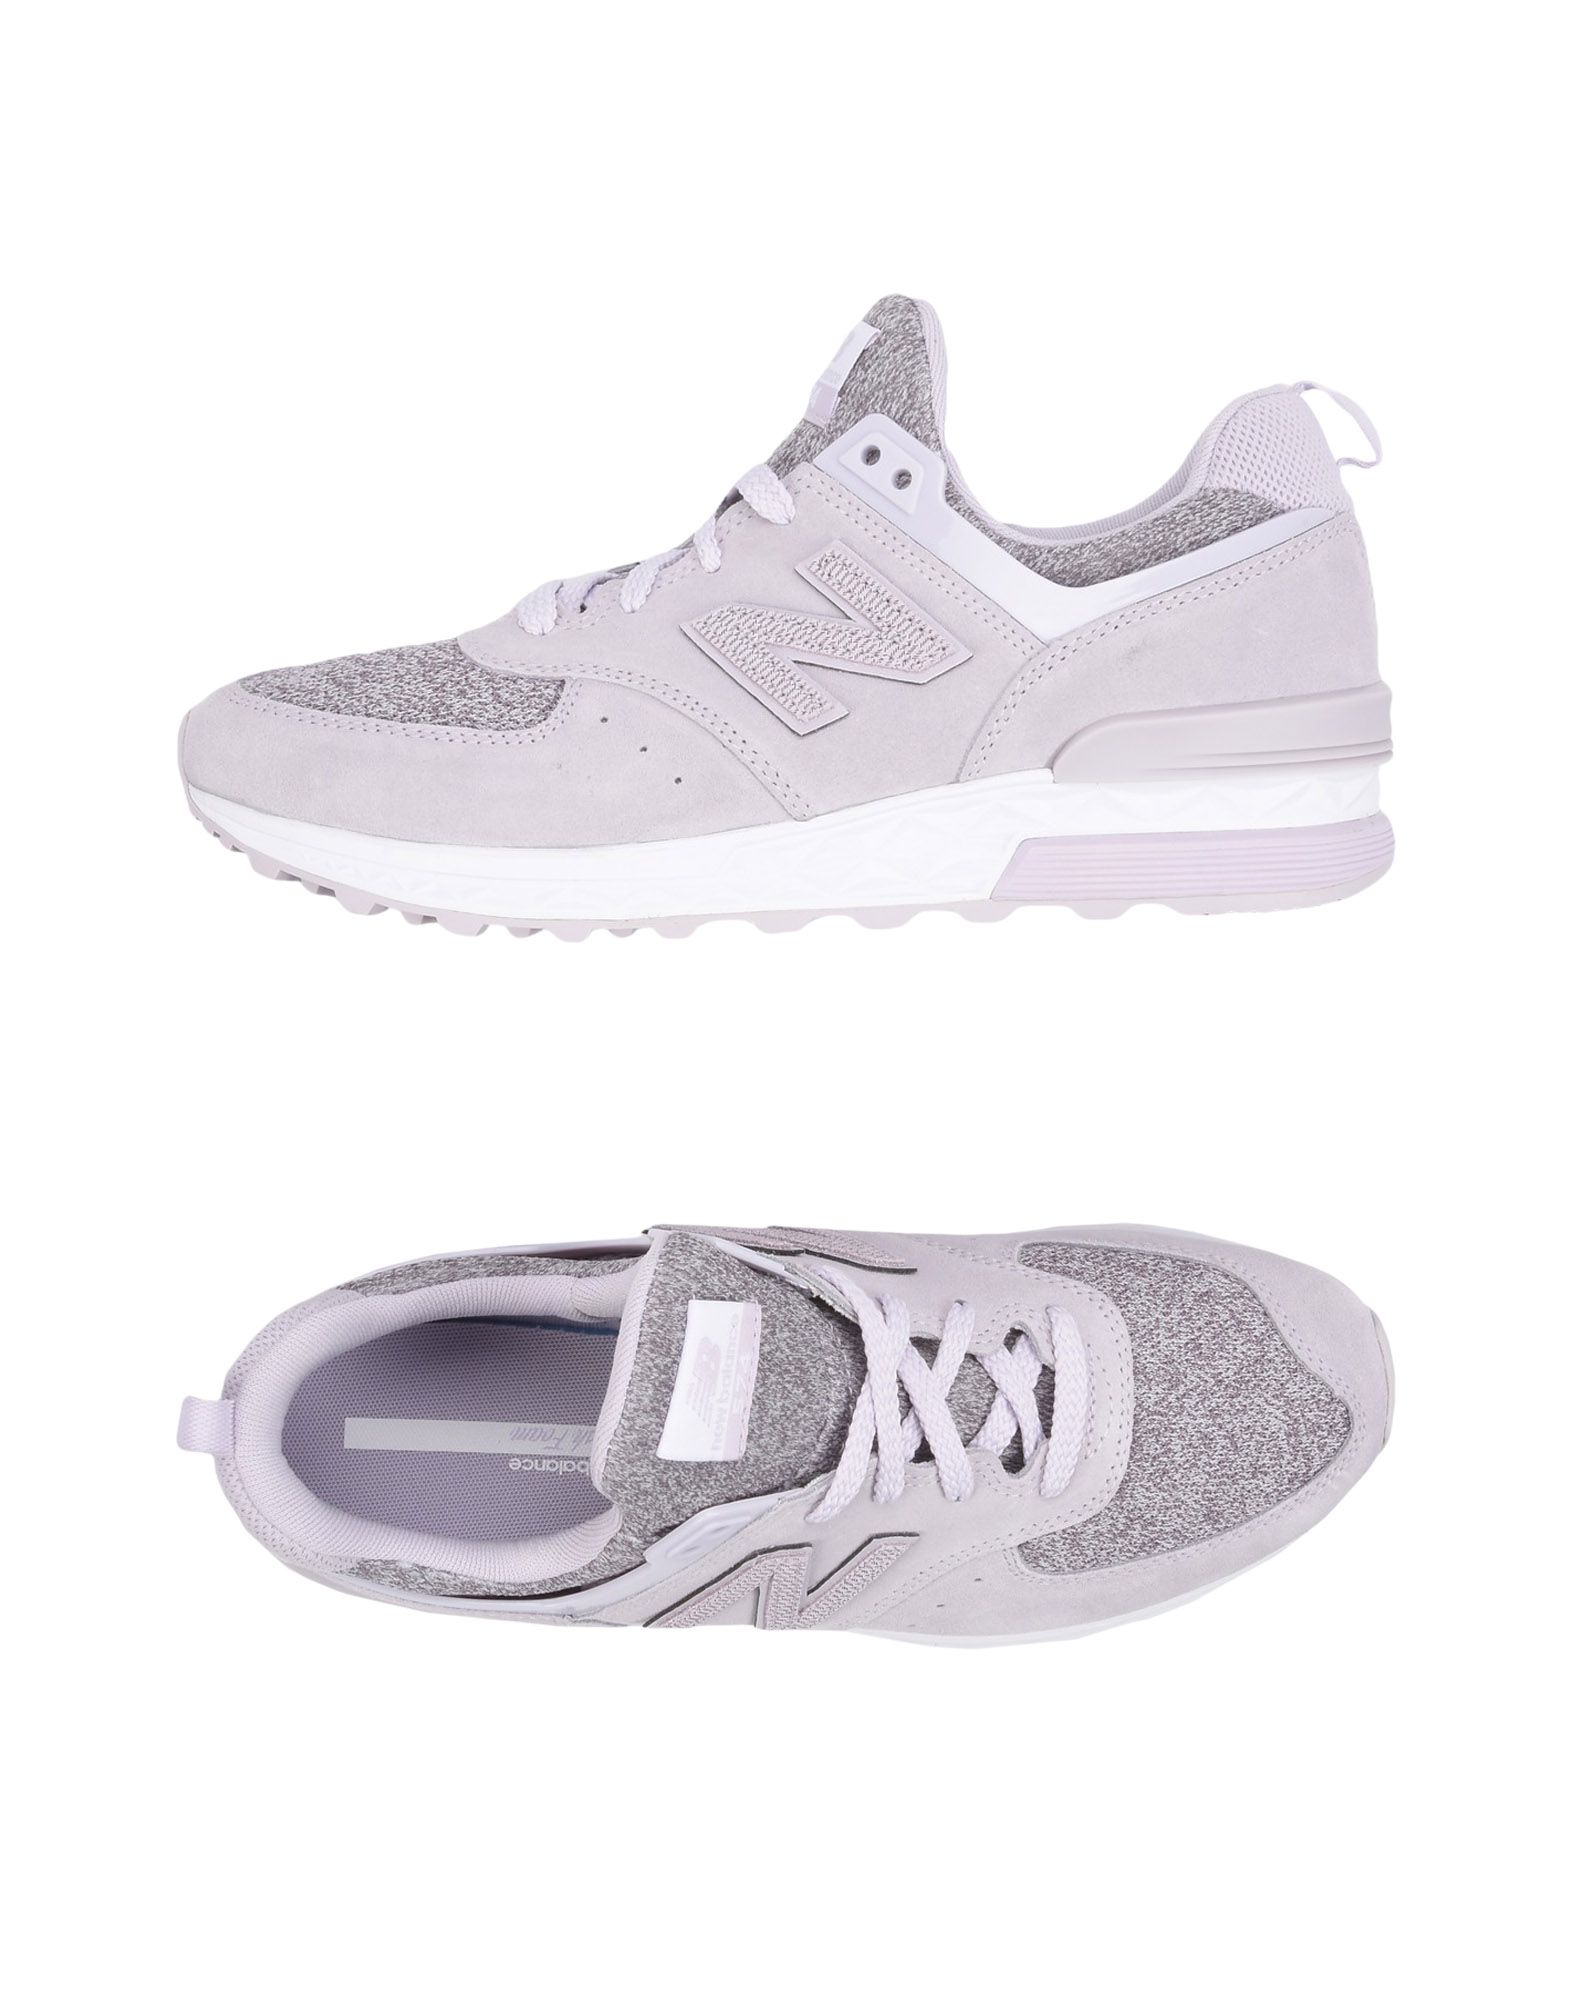 New Balance New 574 Sport - Sneakers - Women New Balance Balance Sneakers online on  United Kingdom - 11341469SW a9eaf1